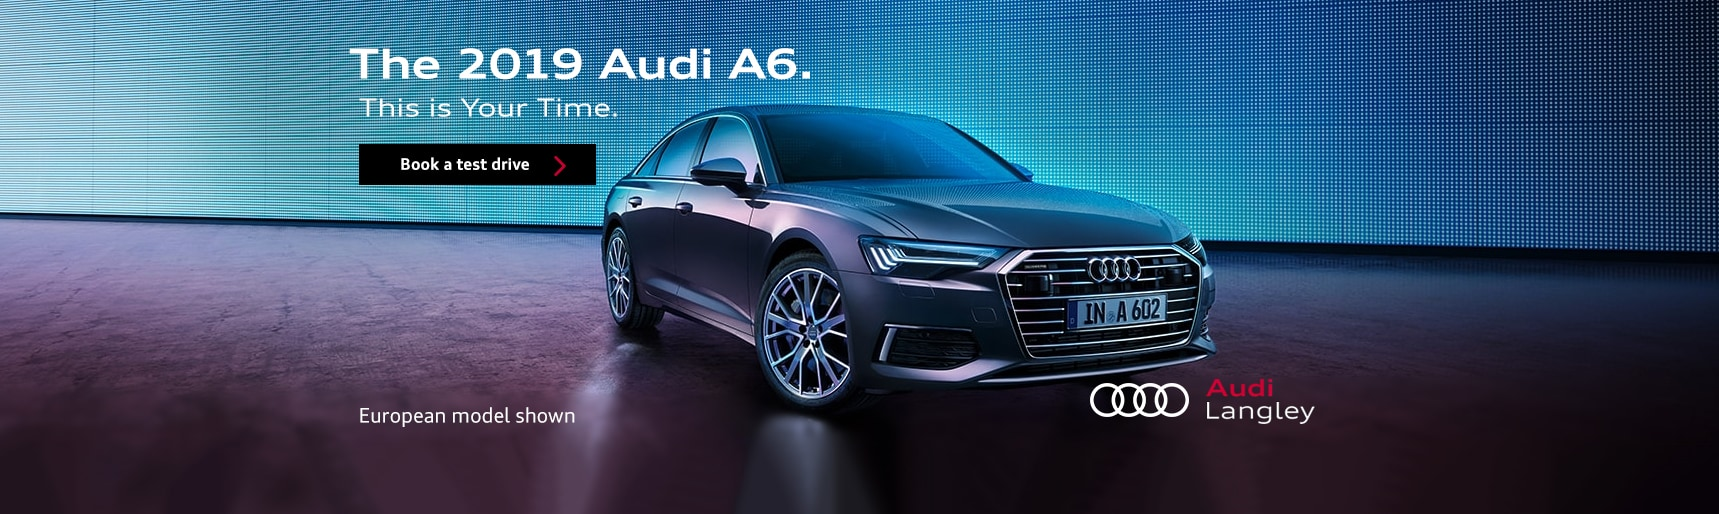 New Used Audi Dealership In Langley Bc Audi Langley